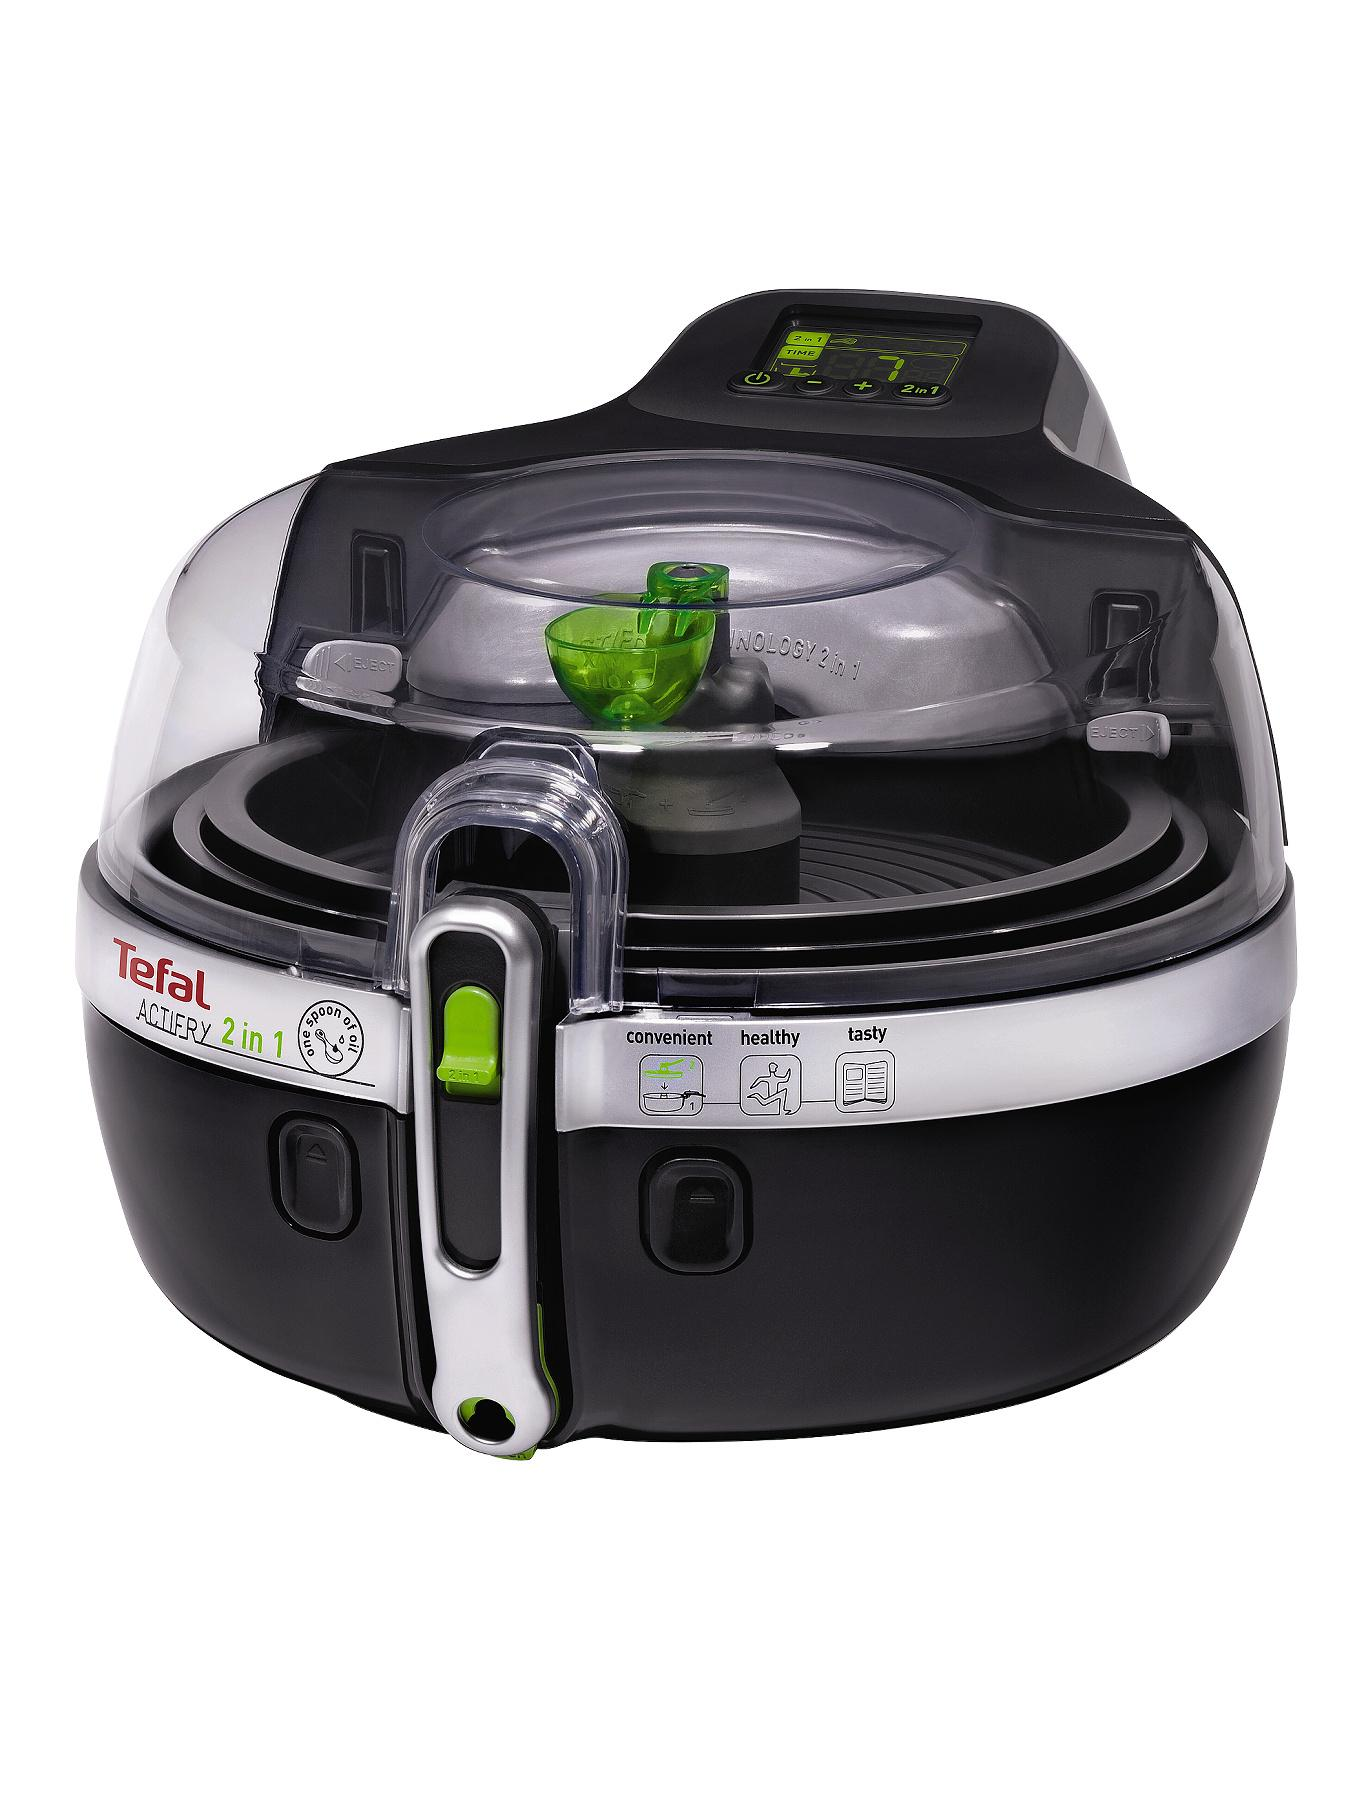 YV9601 1.5kg 2-in-1 Actifry, Black